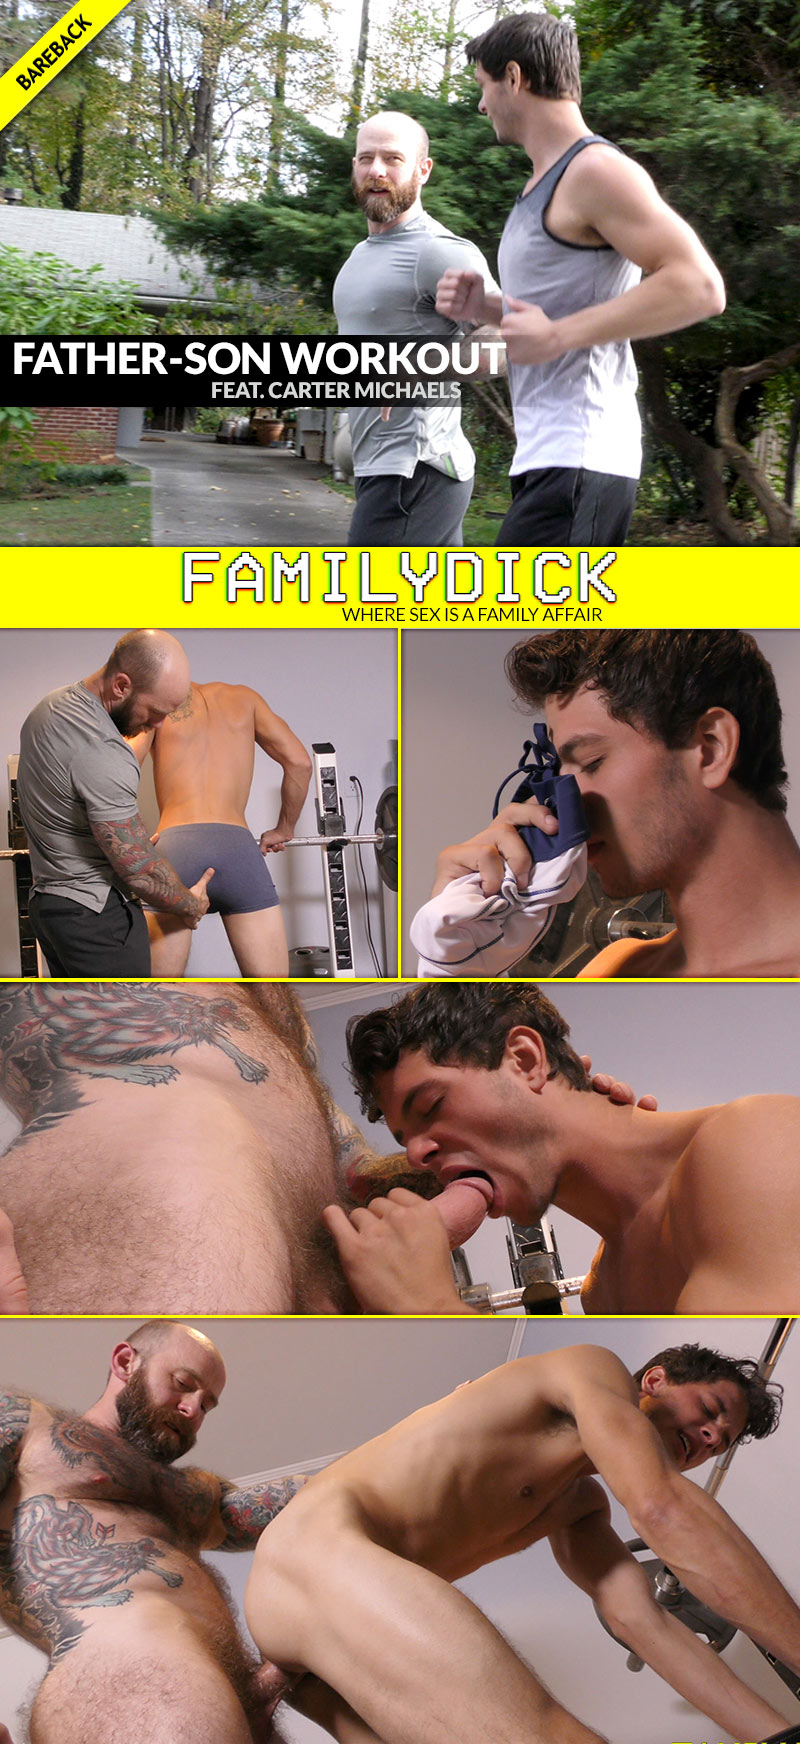 Father-Son Workout (feat. Carter Michaels) at FamilyDick